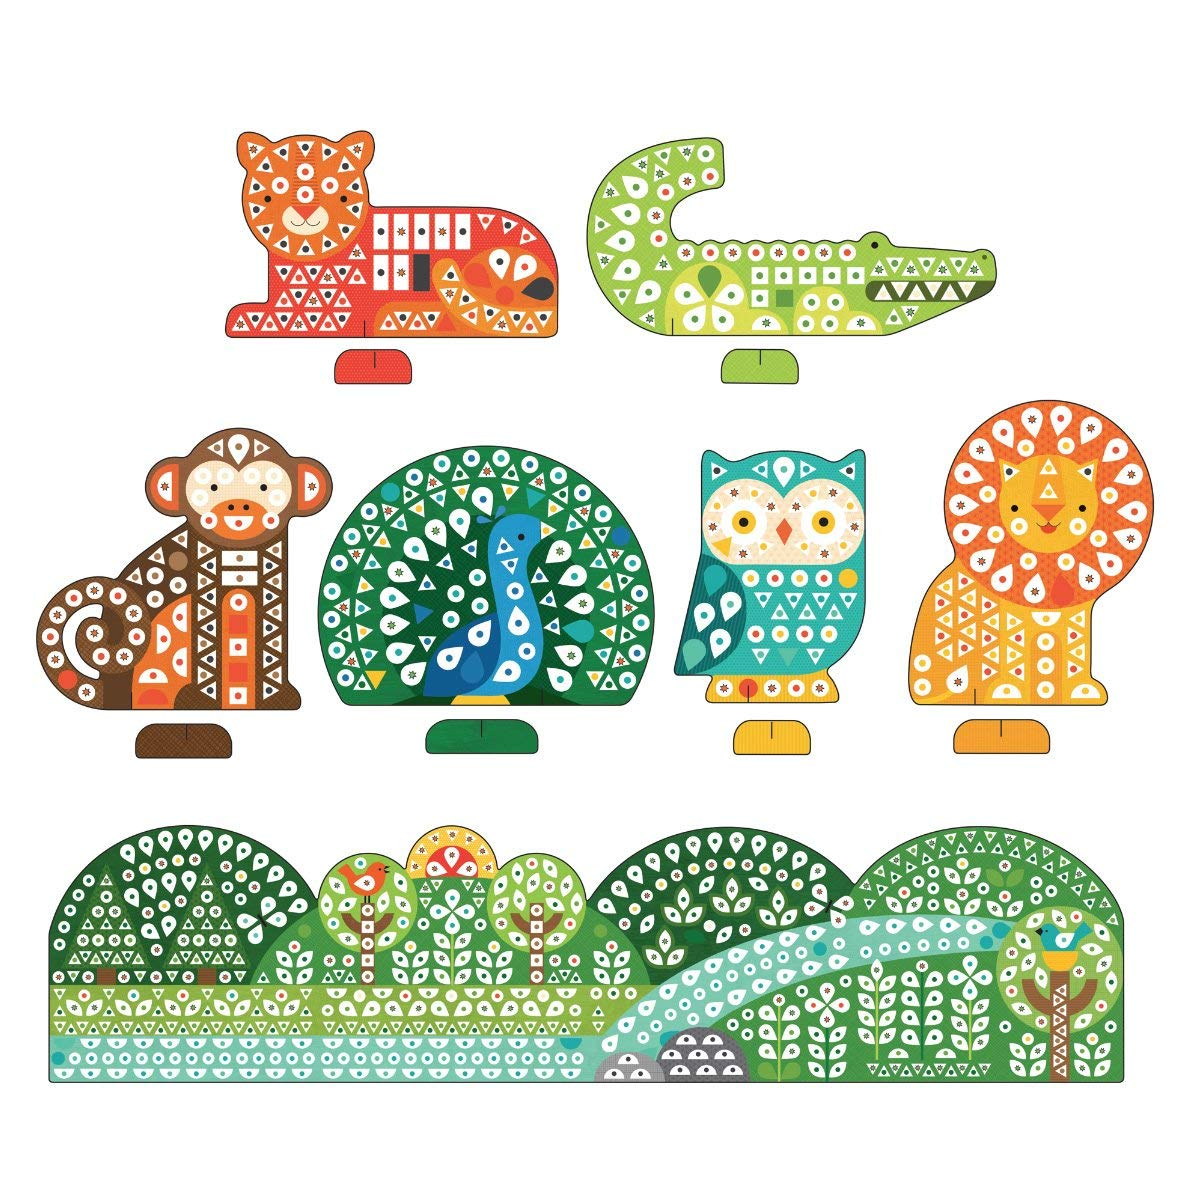 Animal Friends Petit Collage Mosaic Sticker Art Kit with Over 1000 Stickers